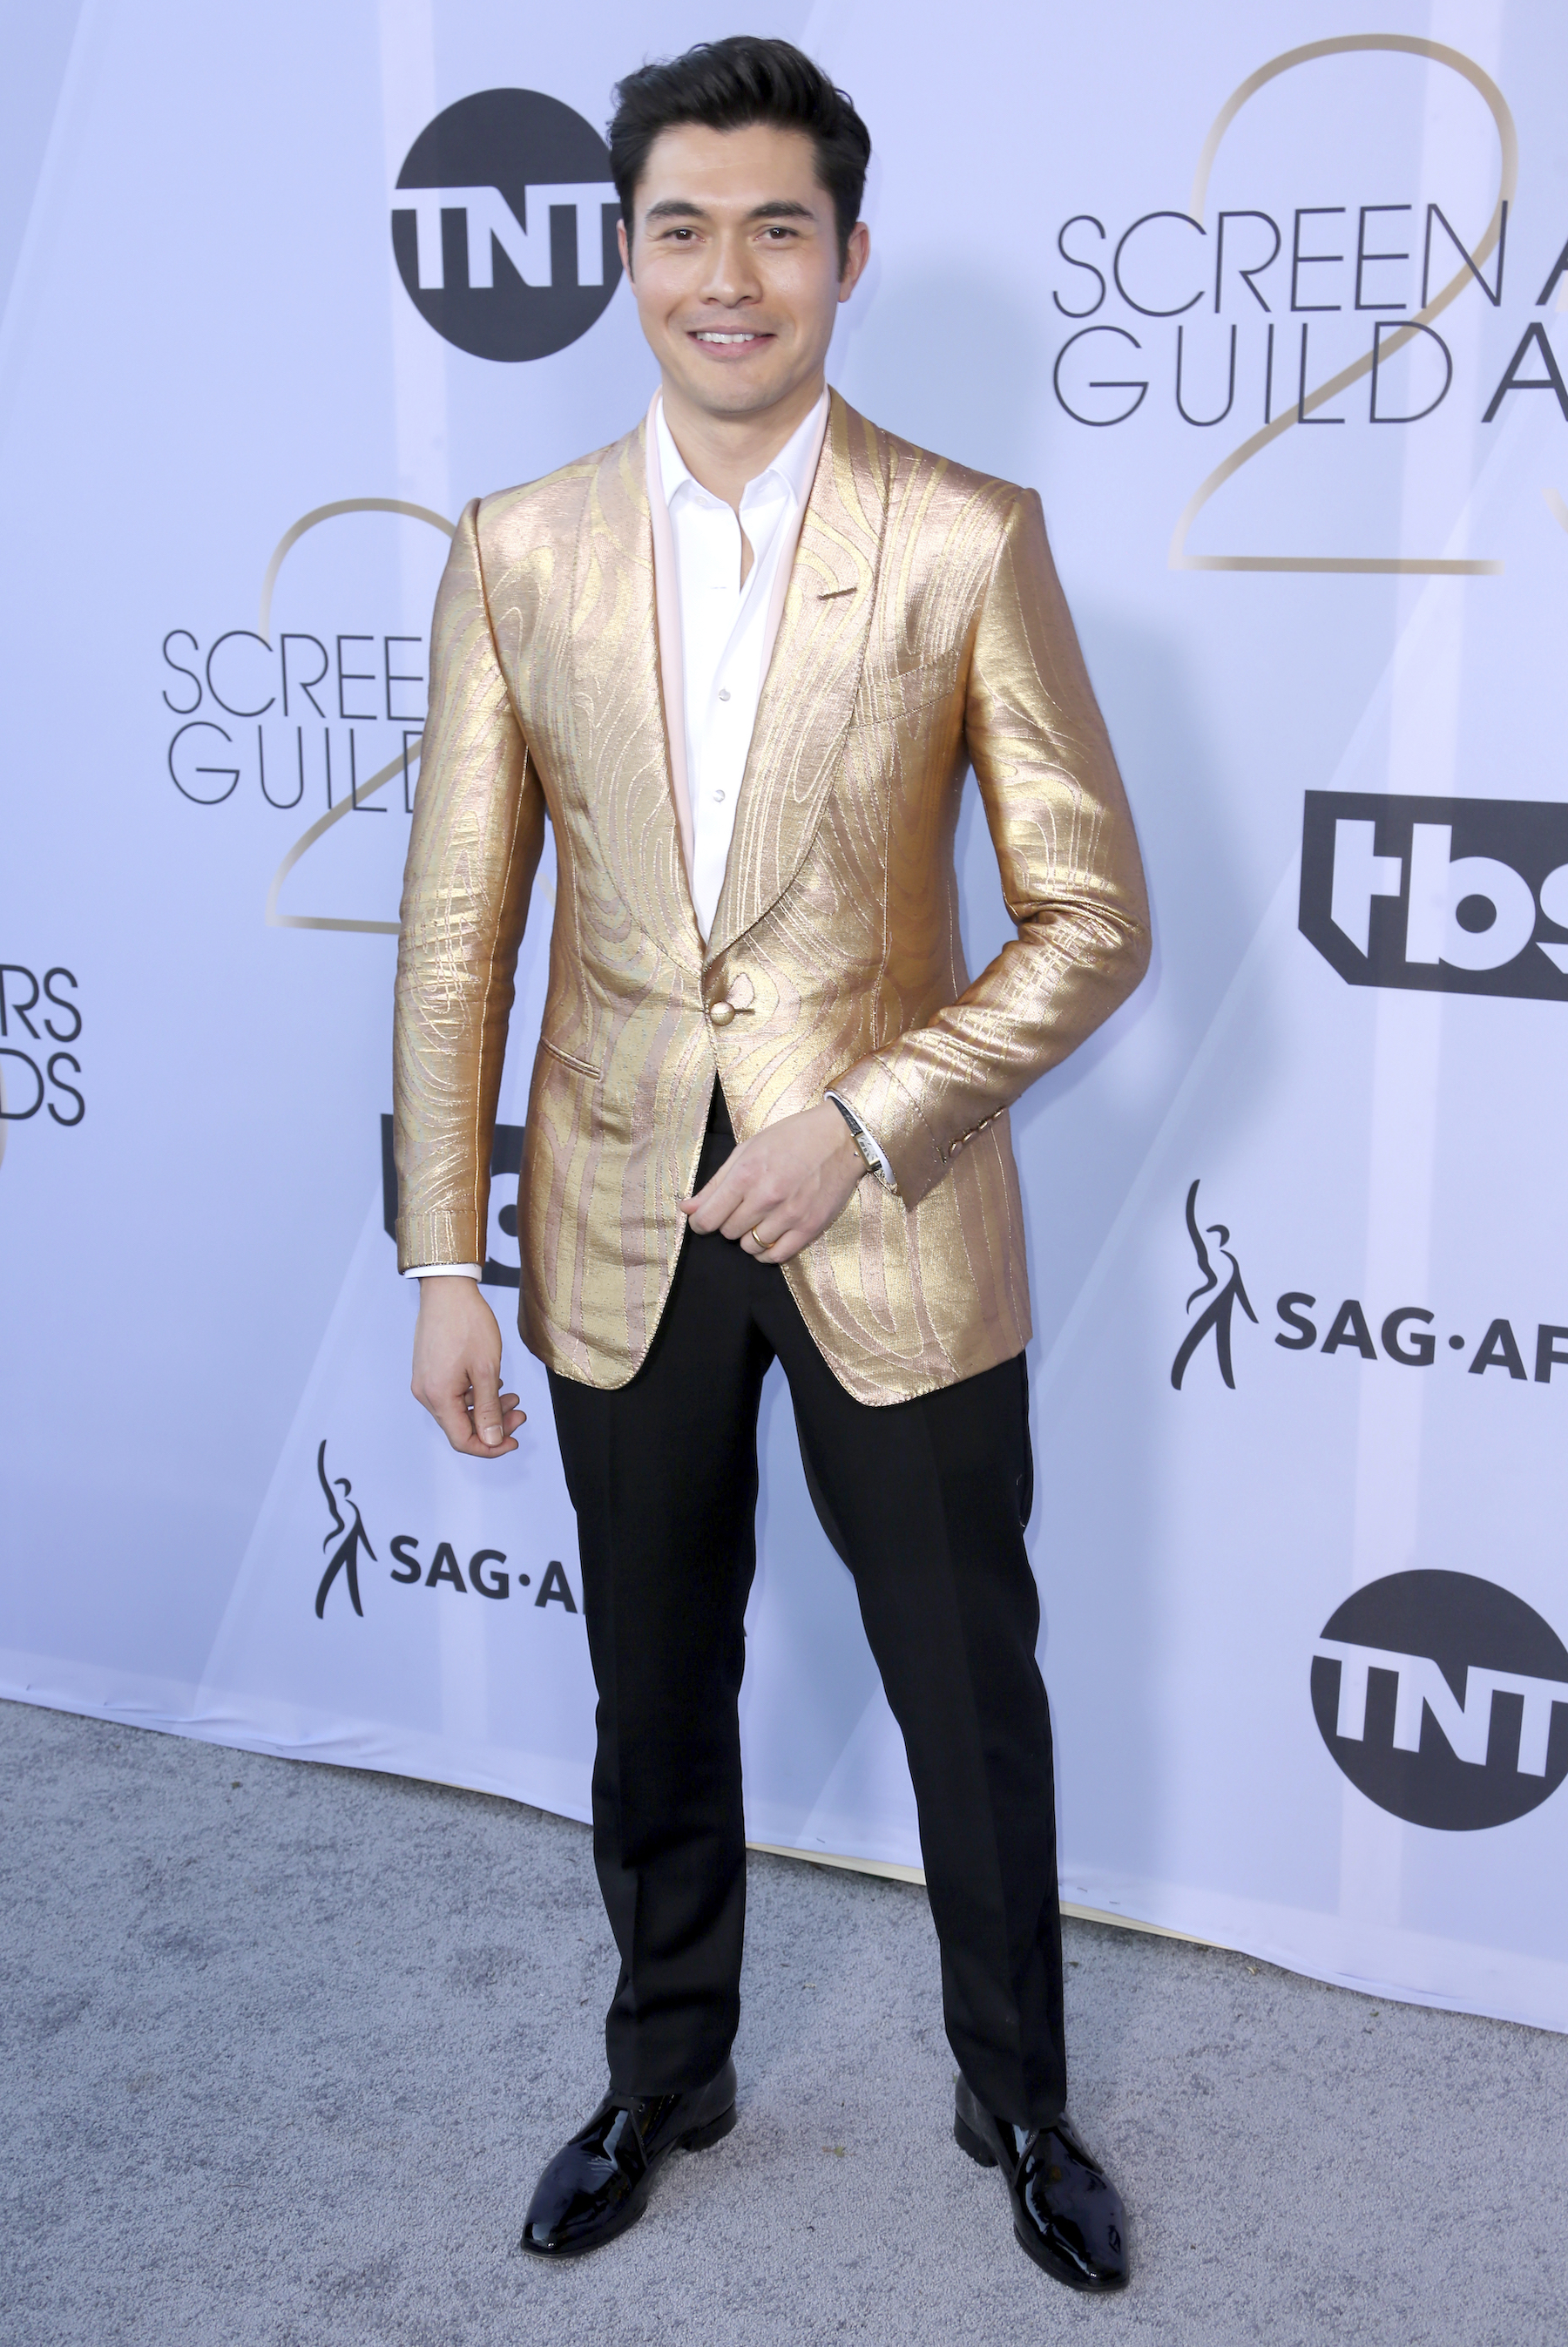 "<div class=""meta image-caption""><div class=""origin-logo origin-image ap""><span>AP</span></div><span class=""caption-text"">Henry Golding arrives at the 25th annual Screen Actors Guild Awards at the Shrine Auditorium & Expo Hall on Sunday, Jan. 27, 2019, in Los Angeles. (Willy Sanjuan/Invision/AP)</span></div>"